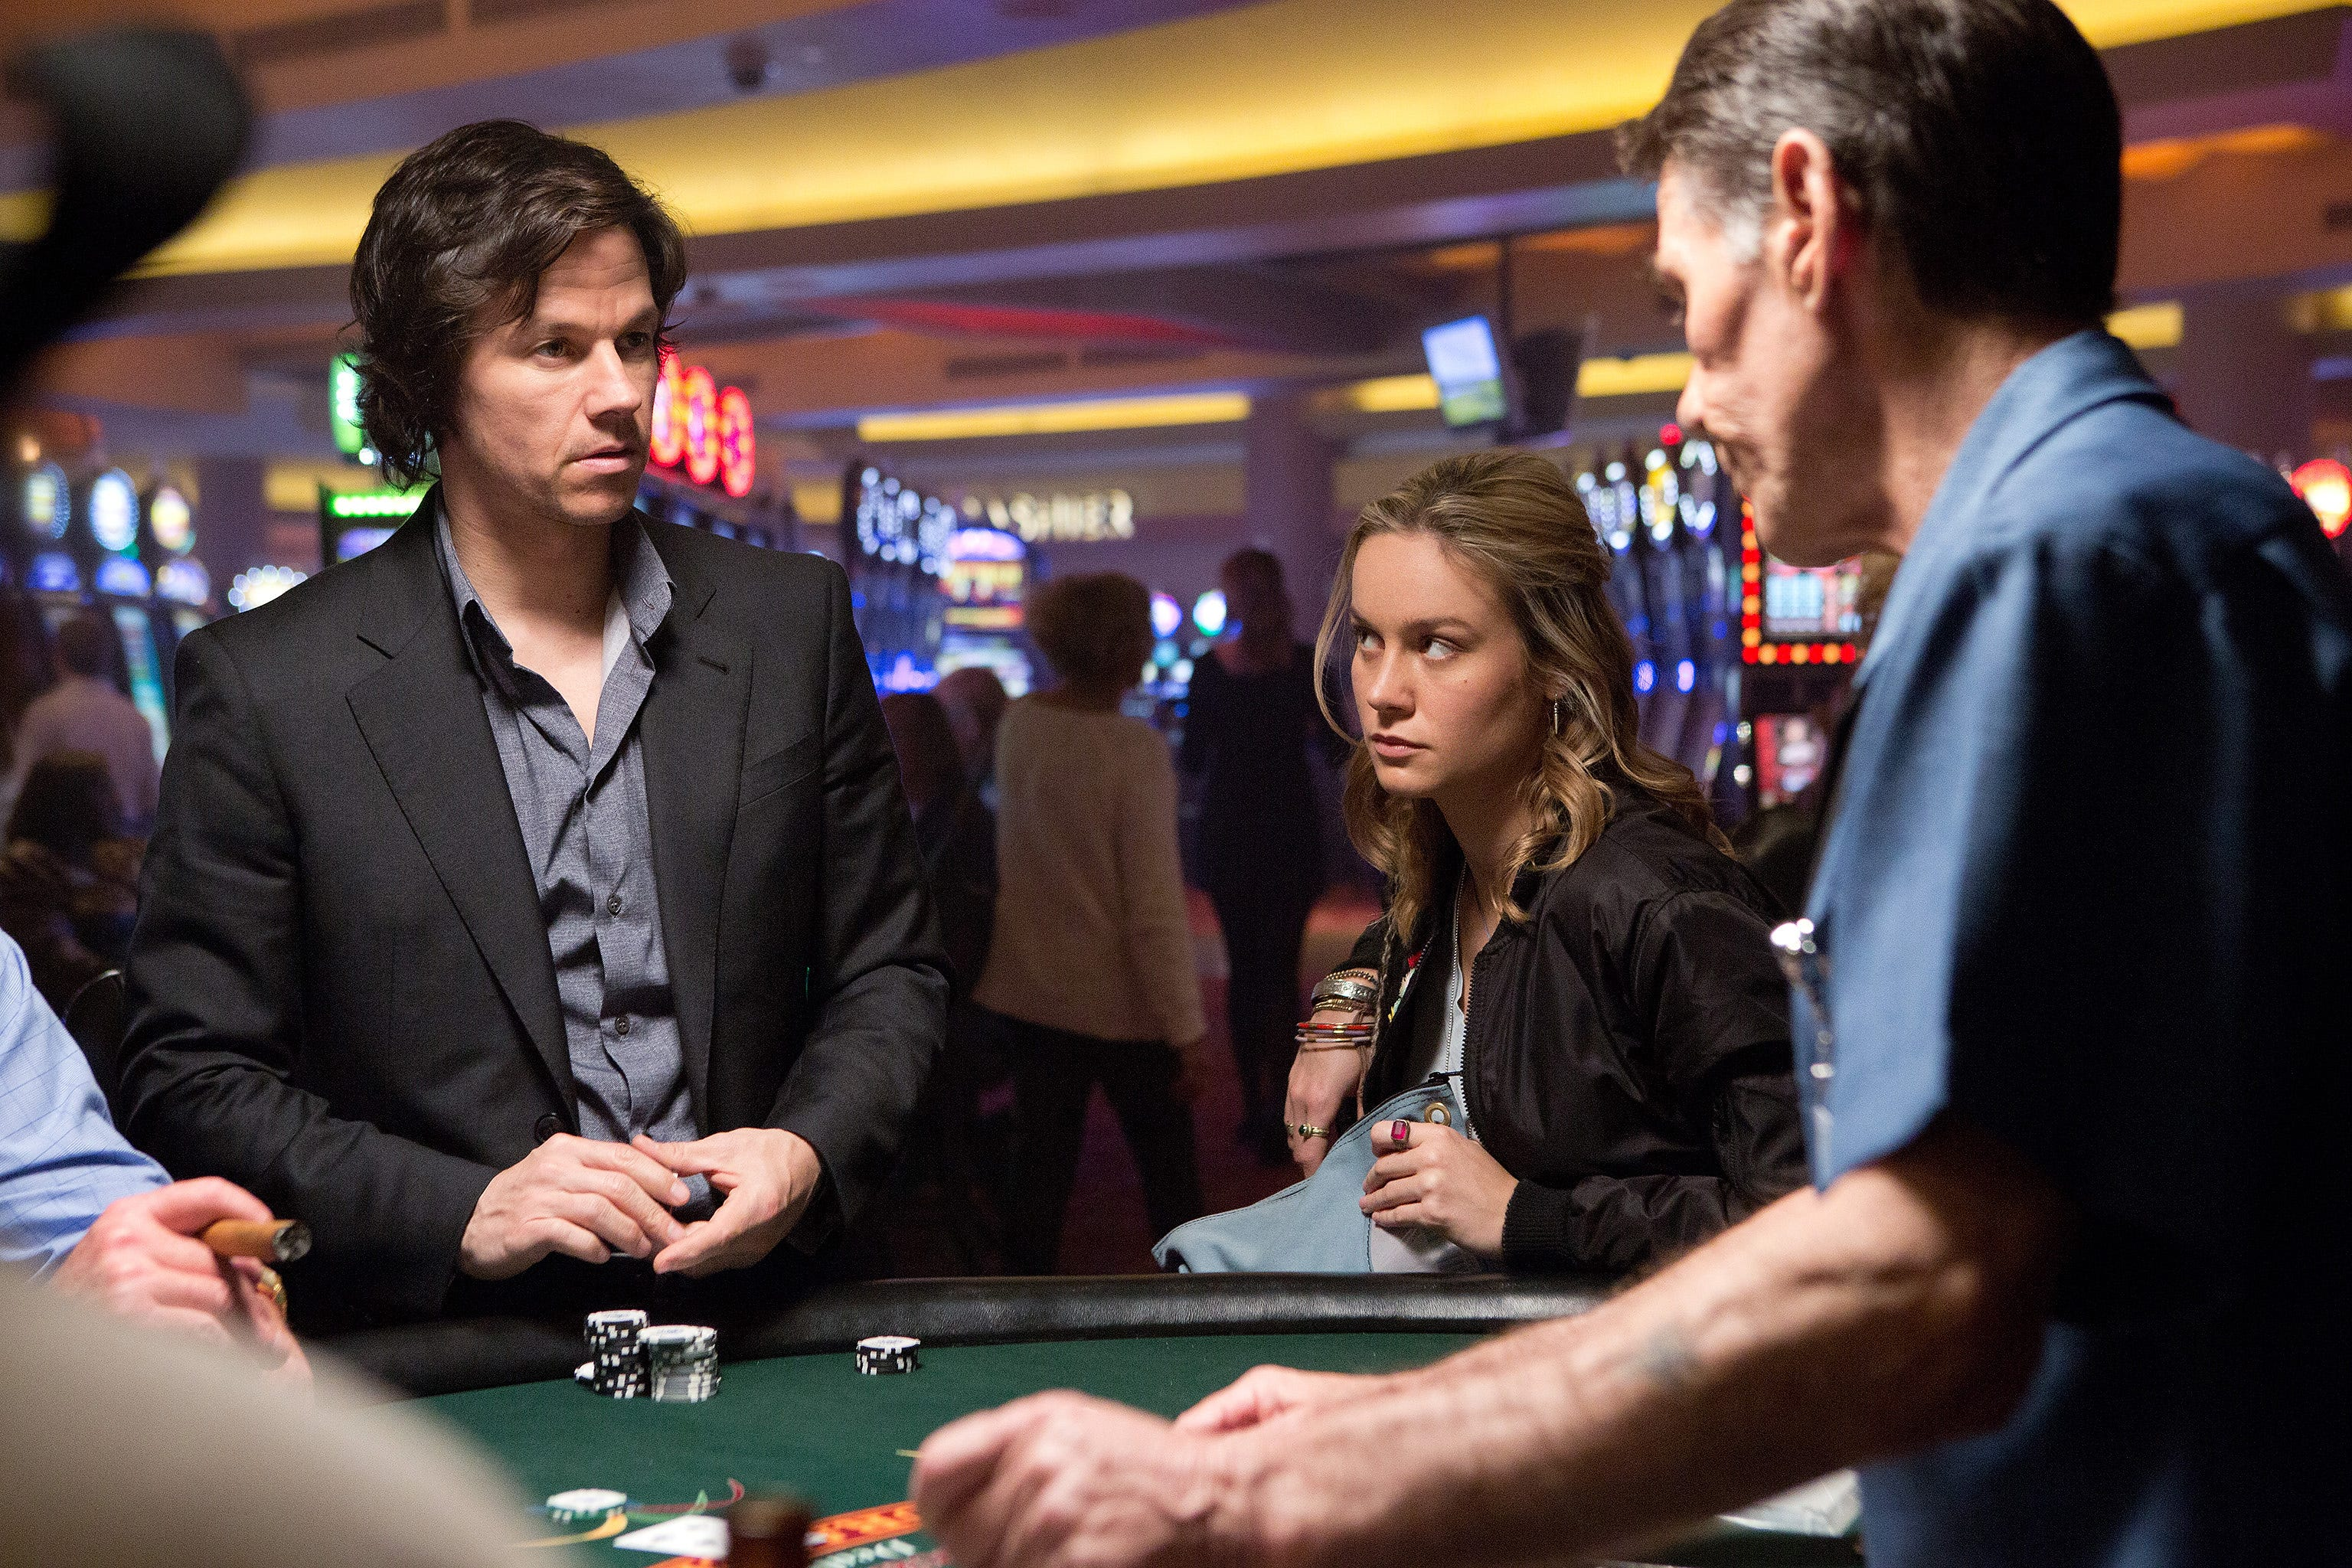 Movie about college students gambling dominator casino